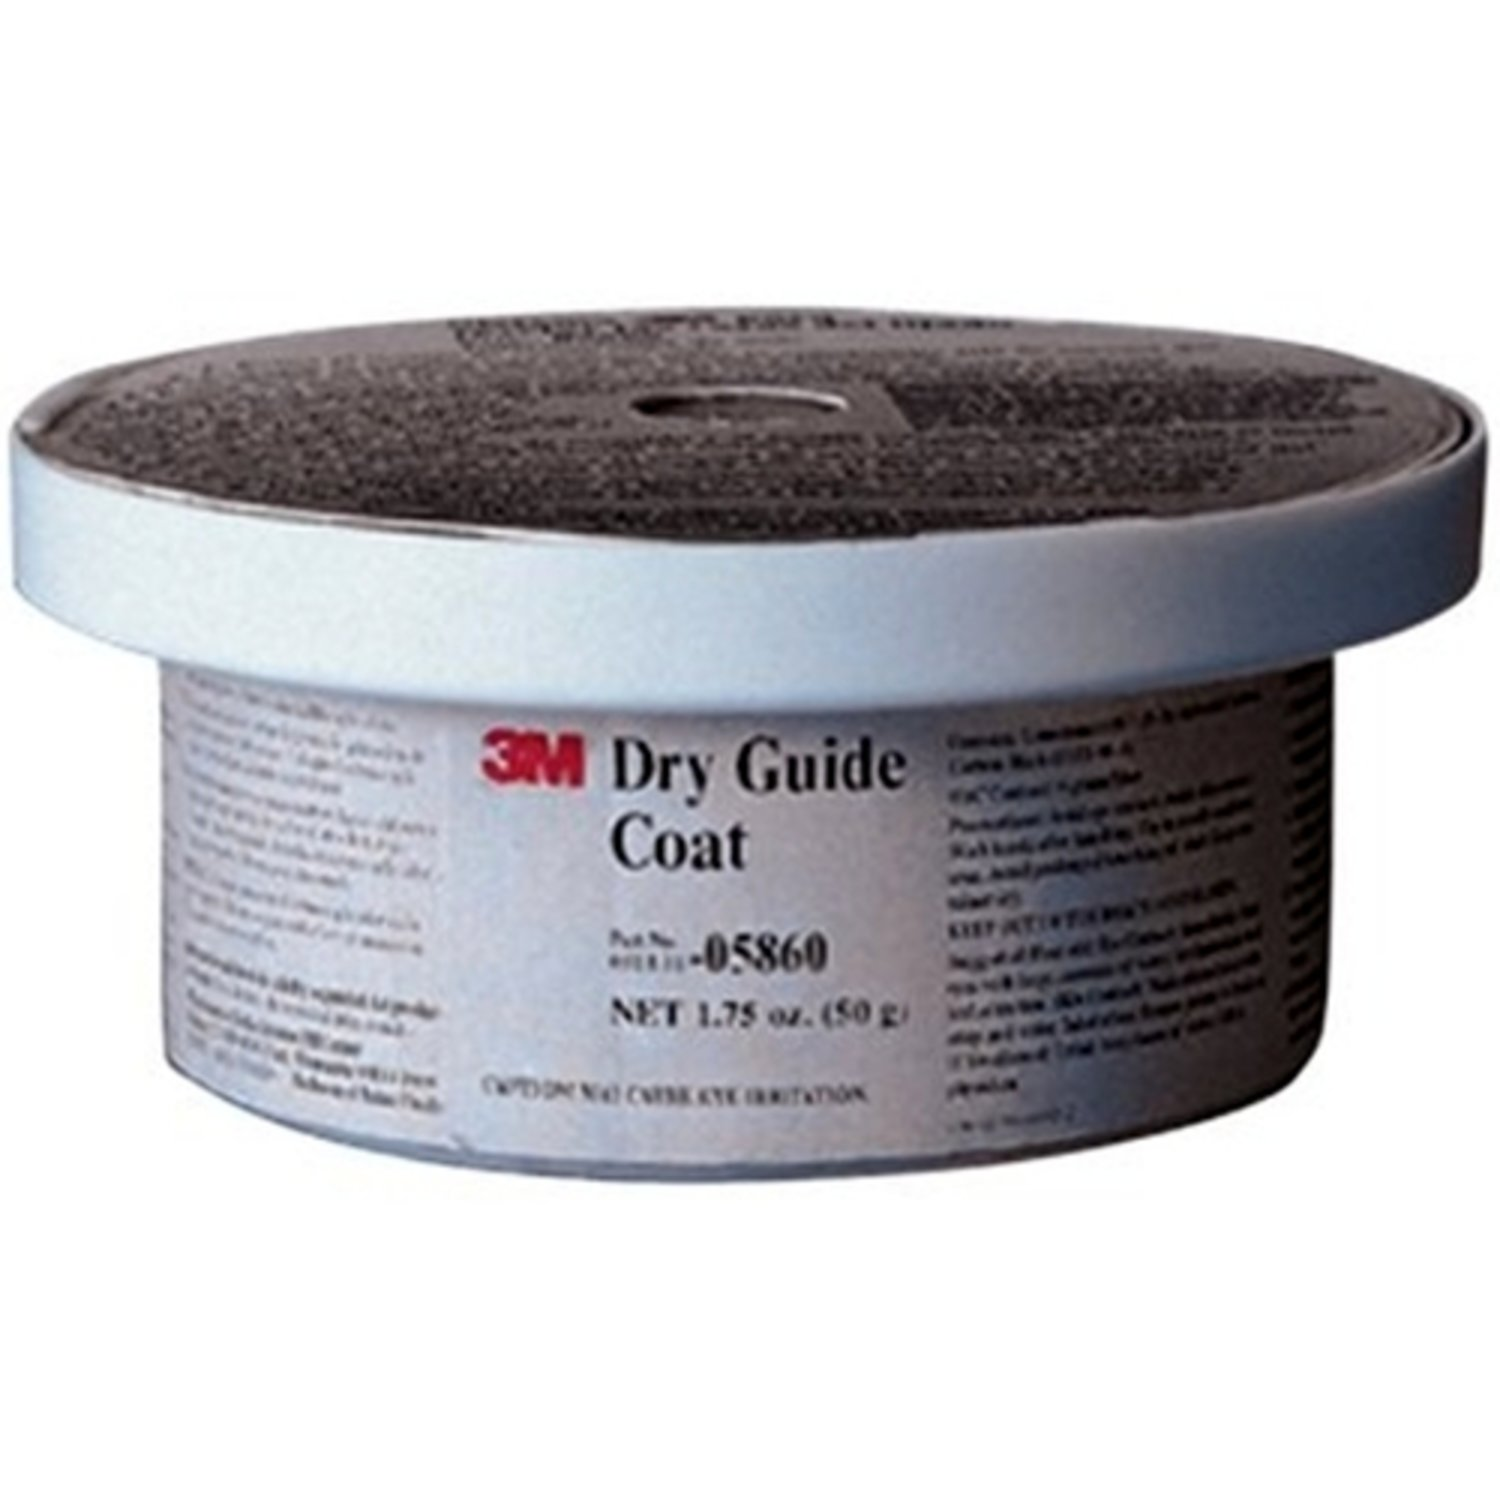 3m 09560 dry guide coat cartridge black 50g powder painting garage rh ebay com 3M Polishing Products Caulk 3M Spray Gun